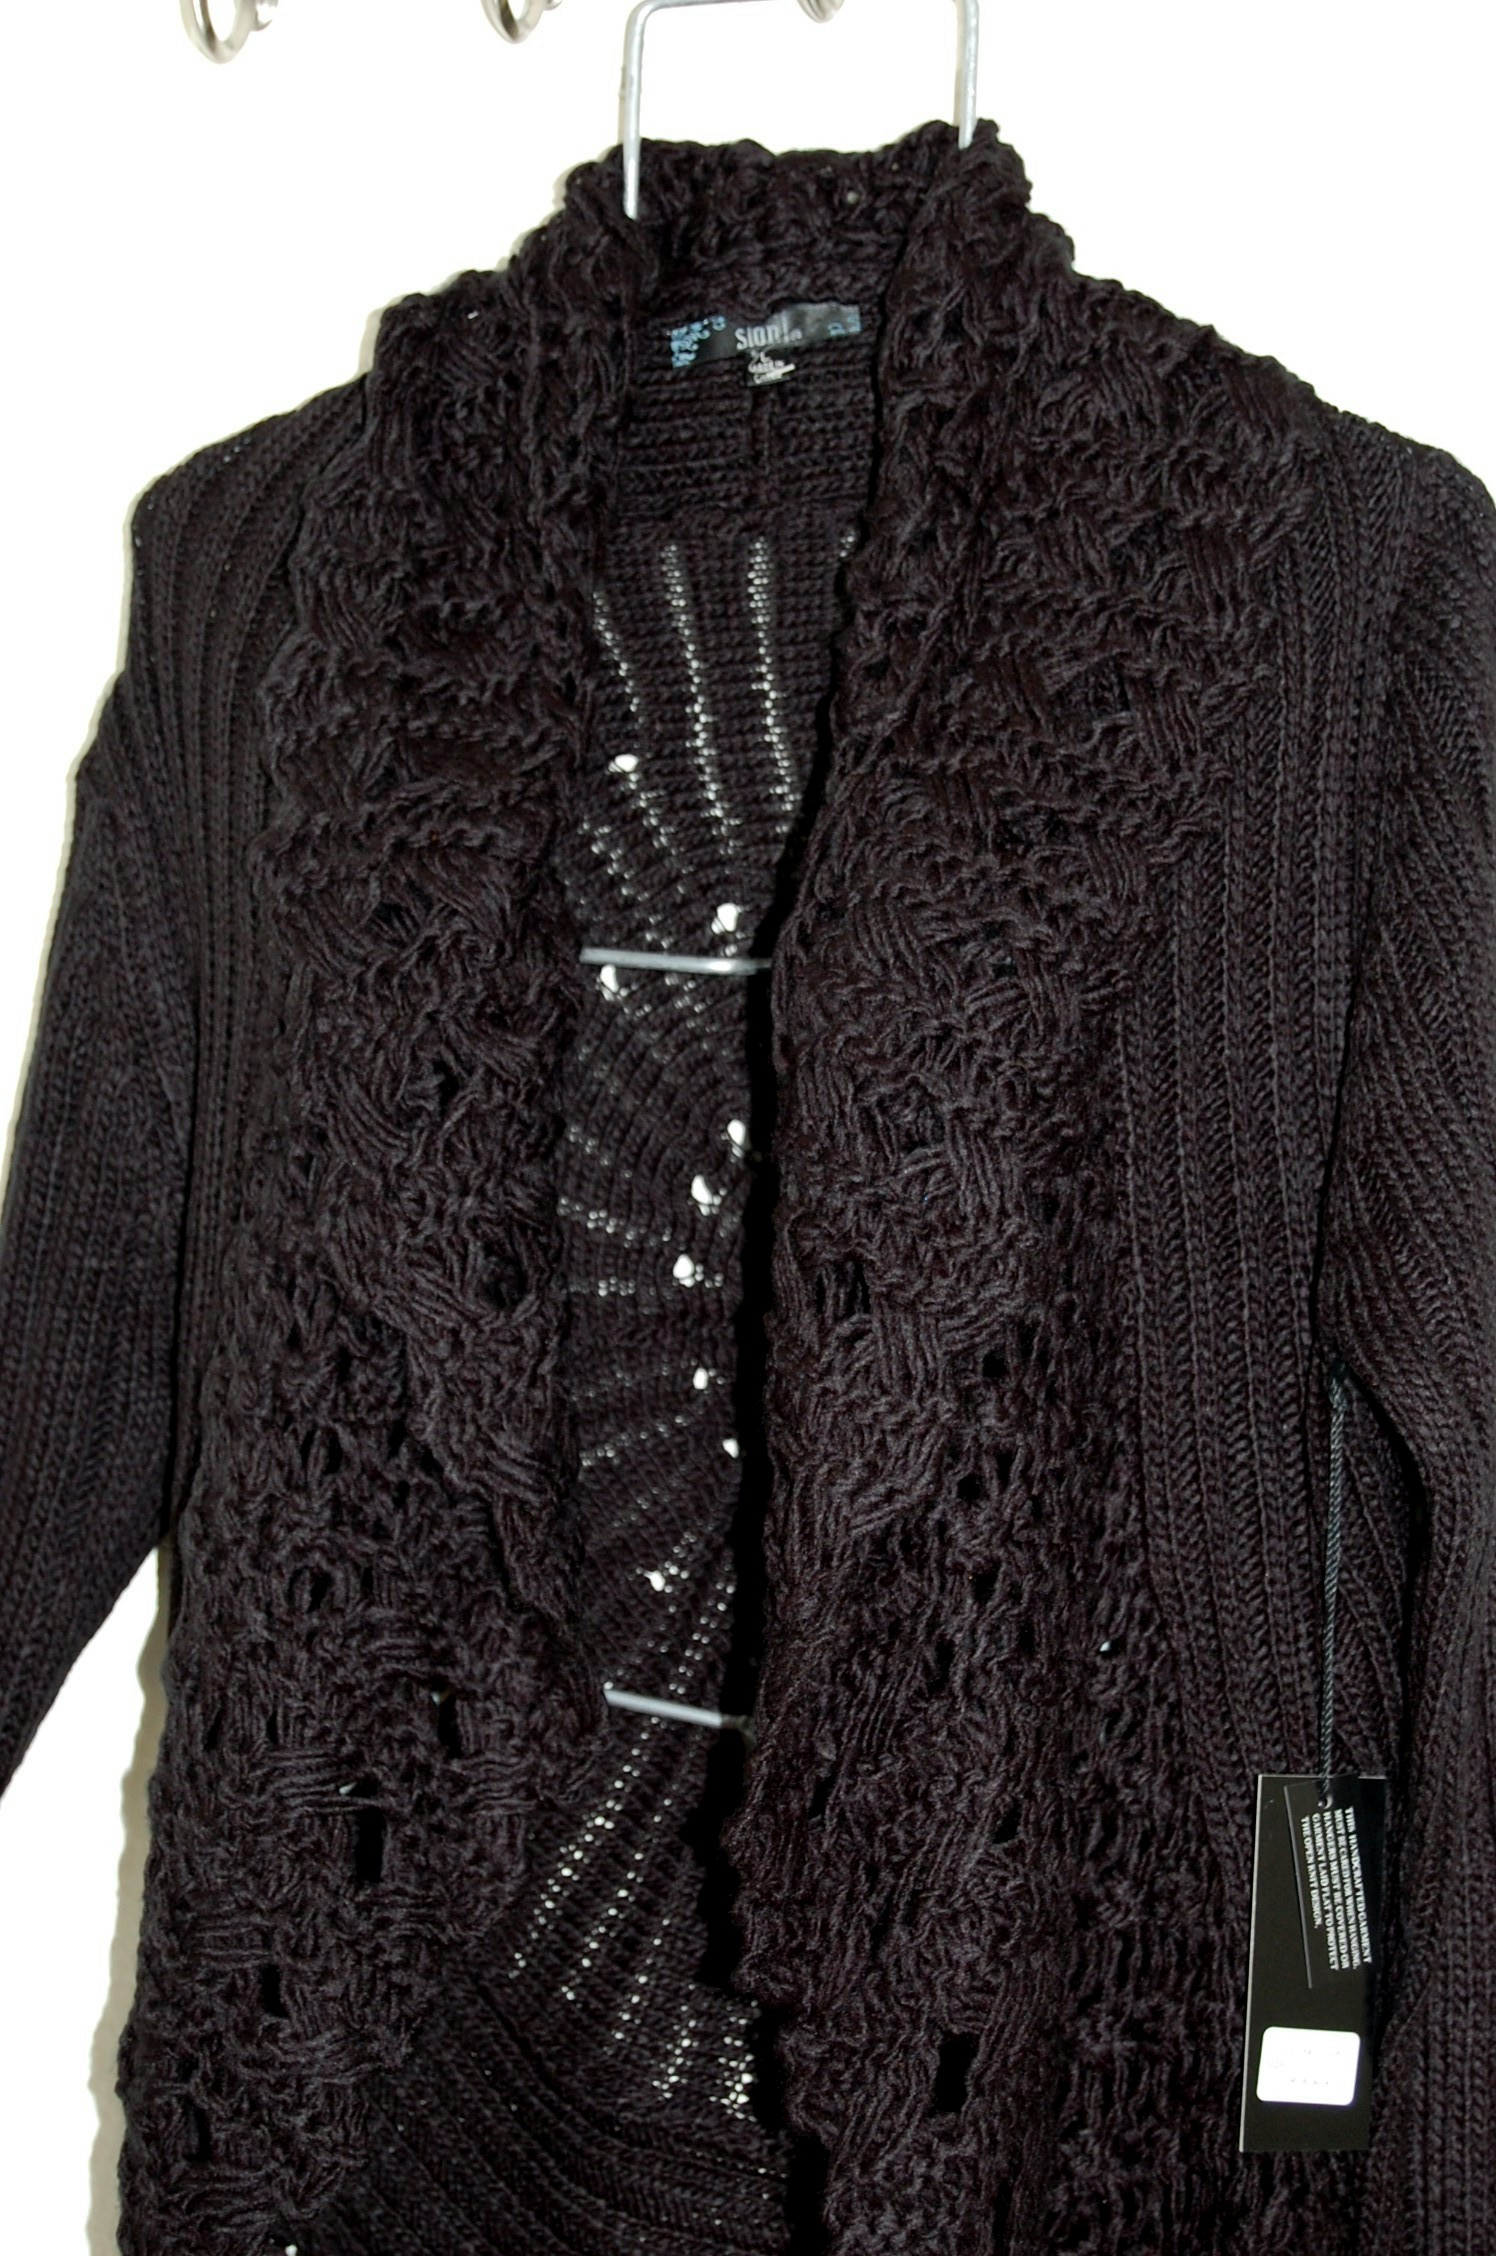 NWT SIONI Ebene Black Large Crocheted Collar Cardigan Sweater Coat ...